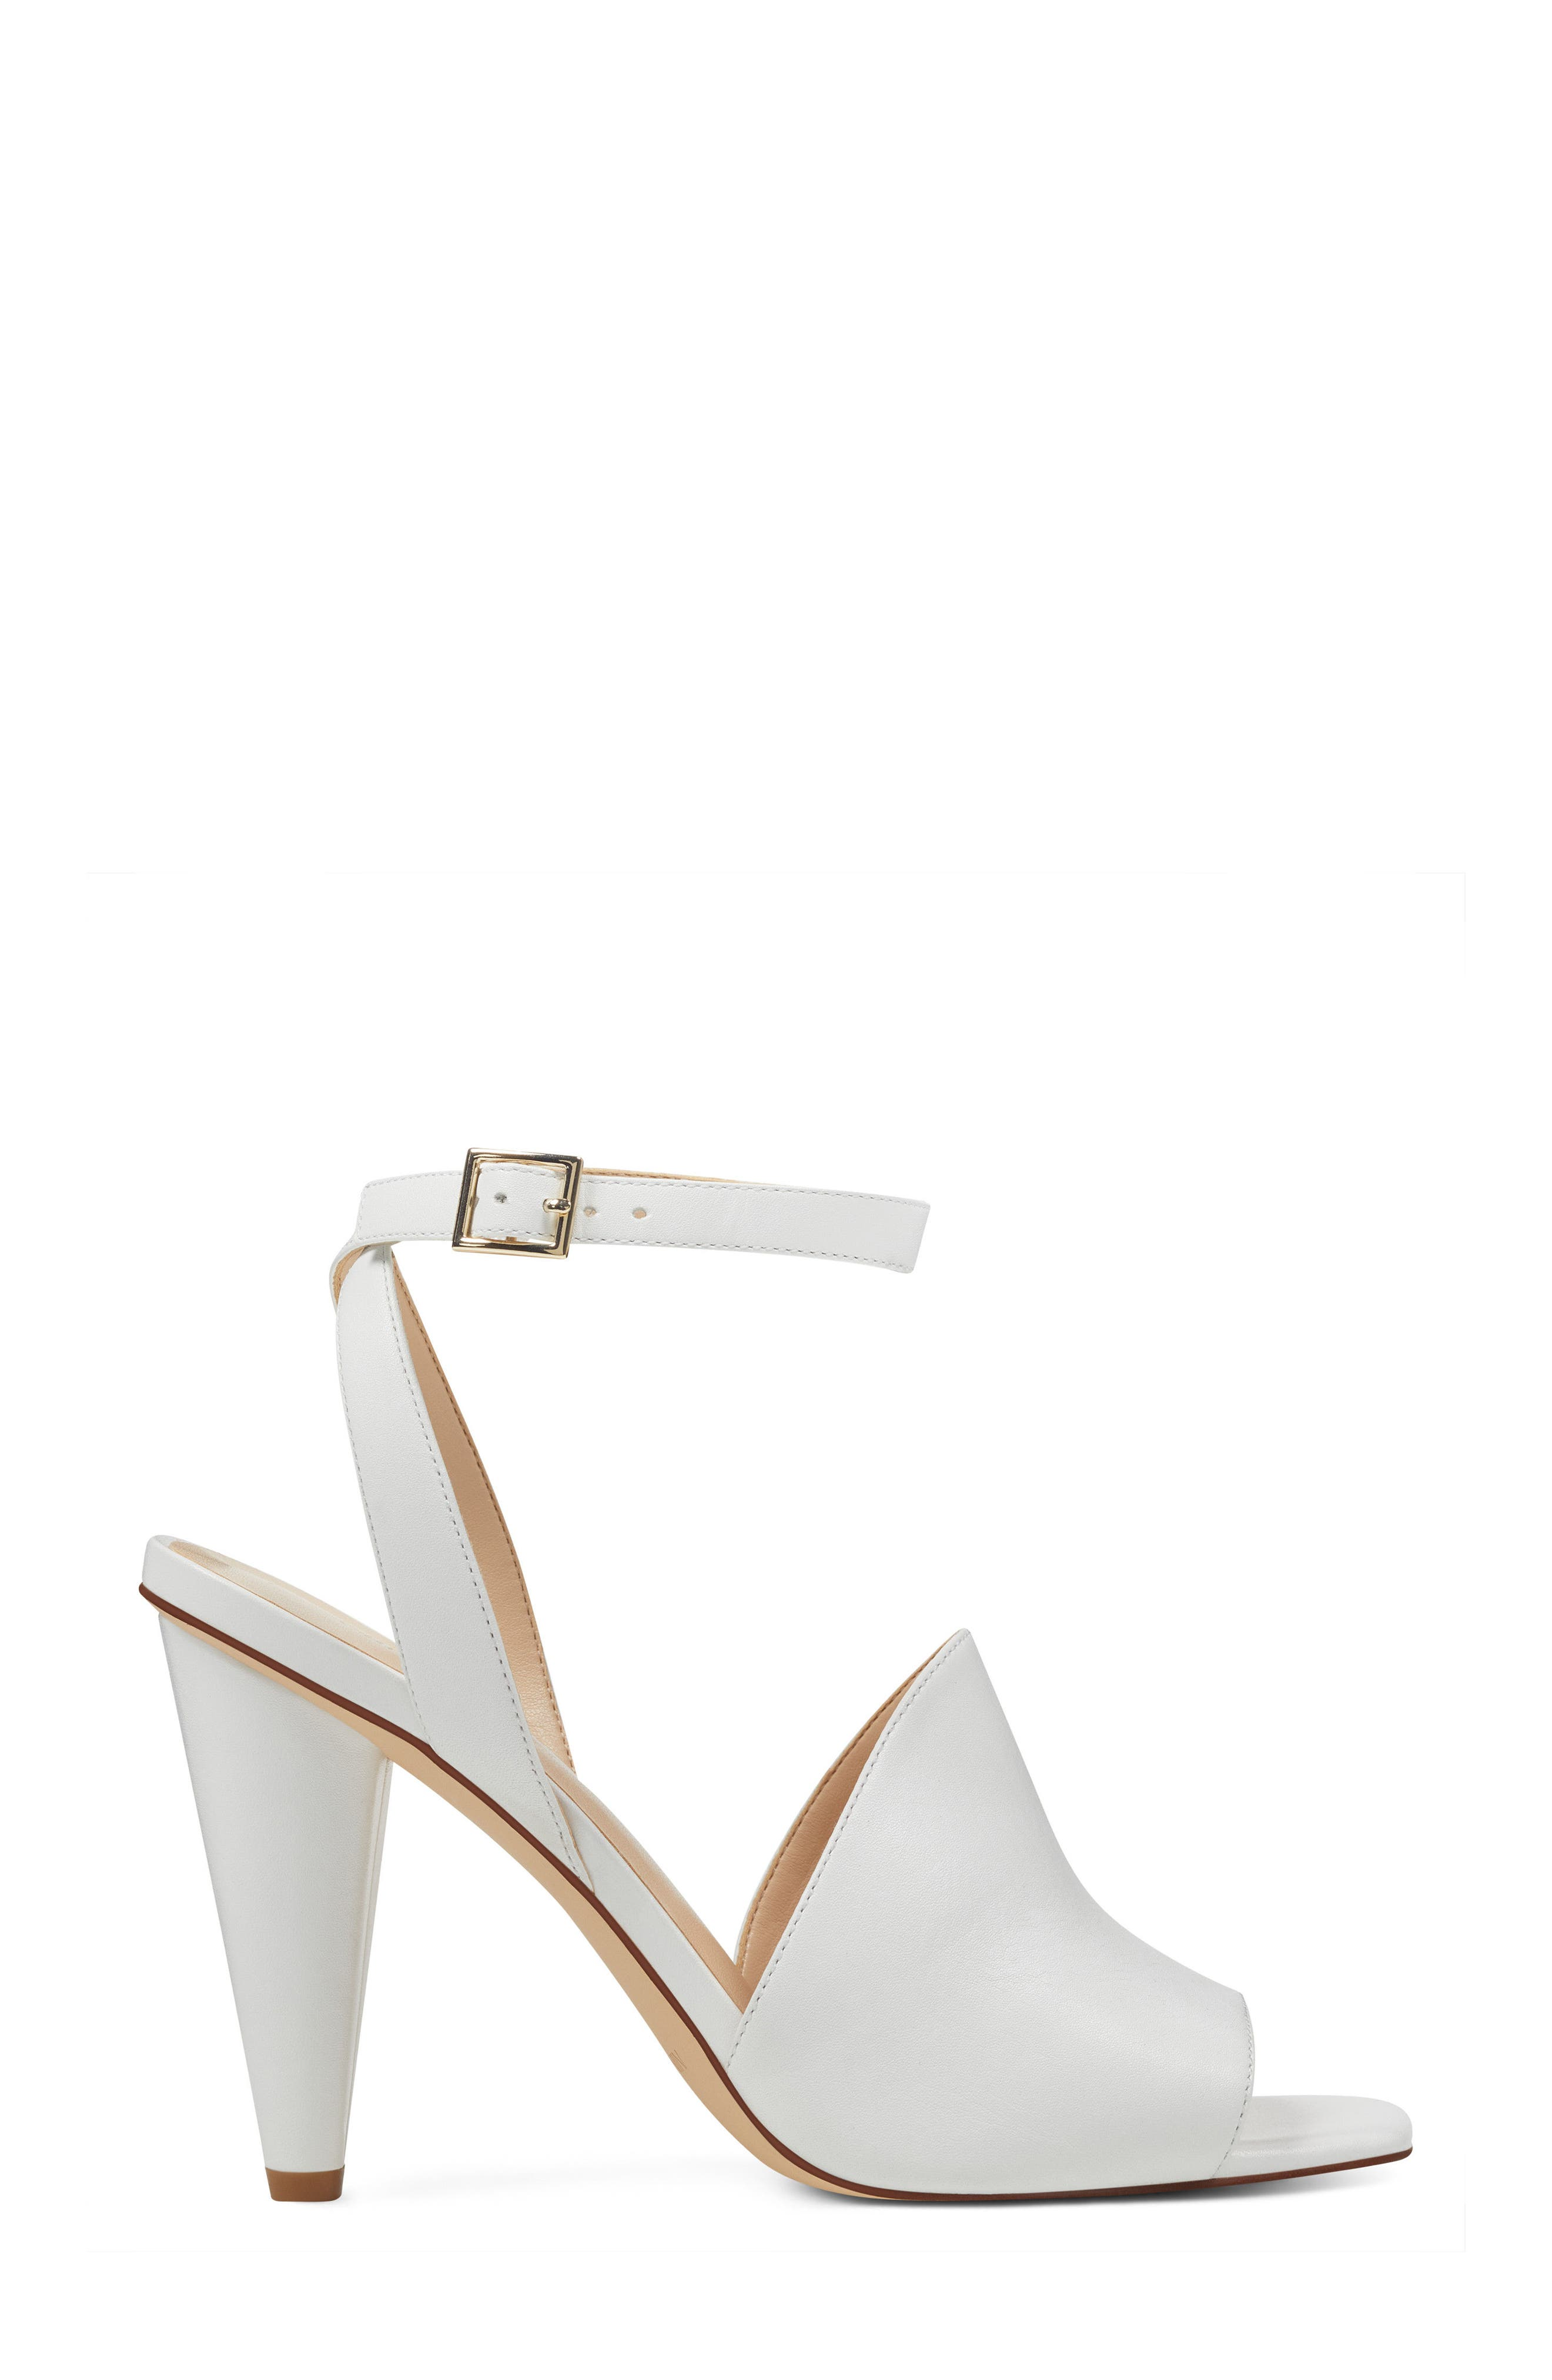 Quilty Ankle Strap Sandal,                             Alternate thumbnail 3, color,                             White Leather